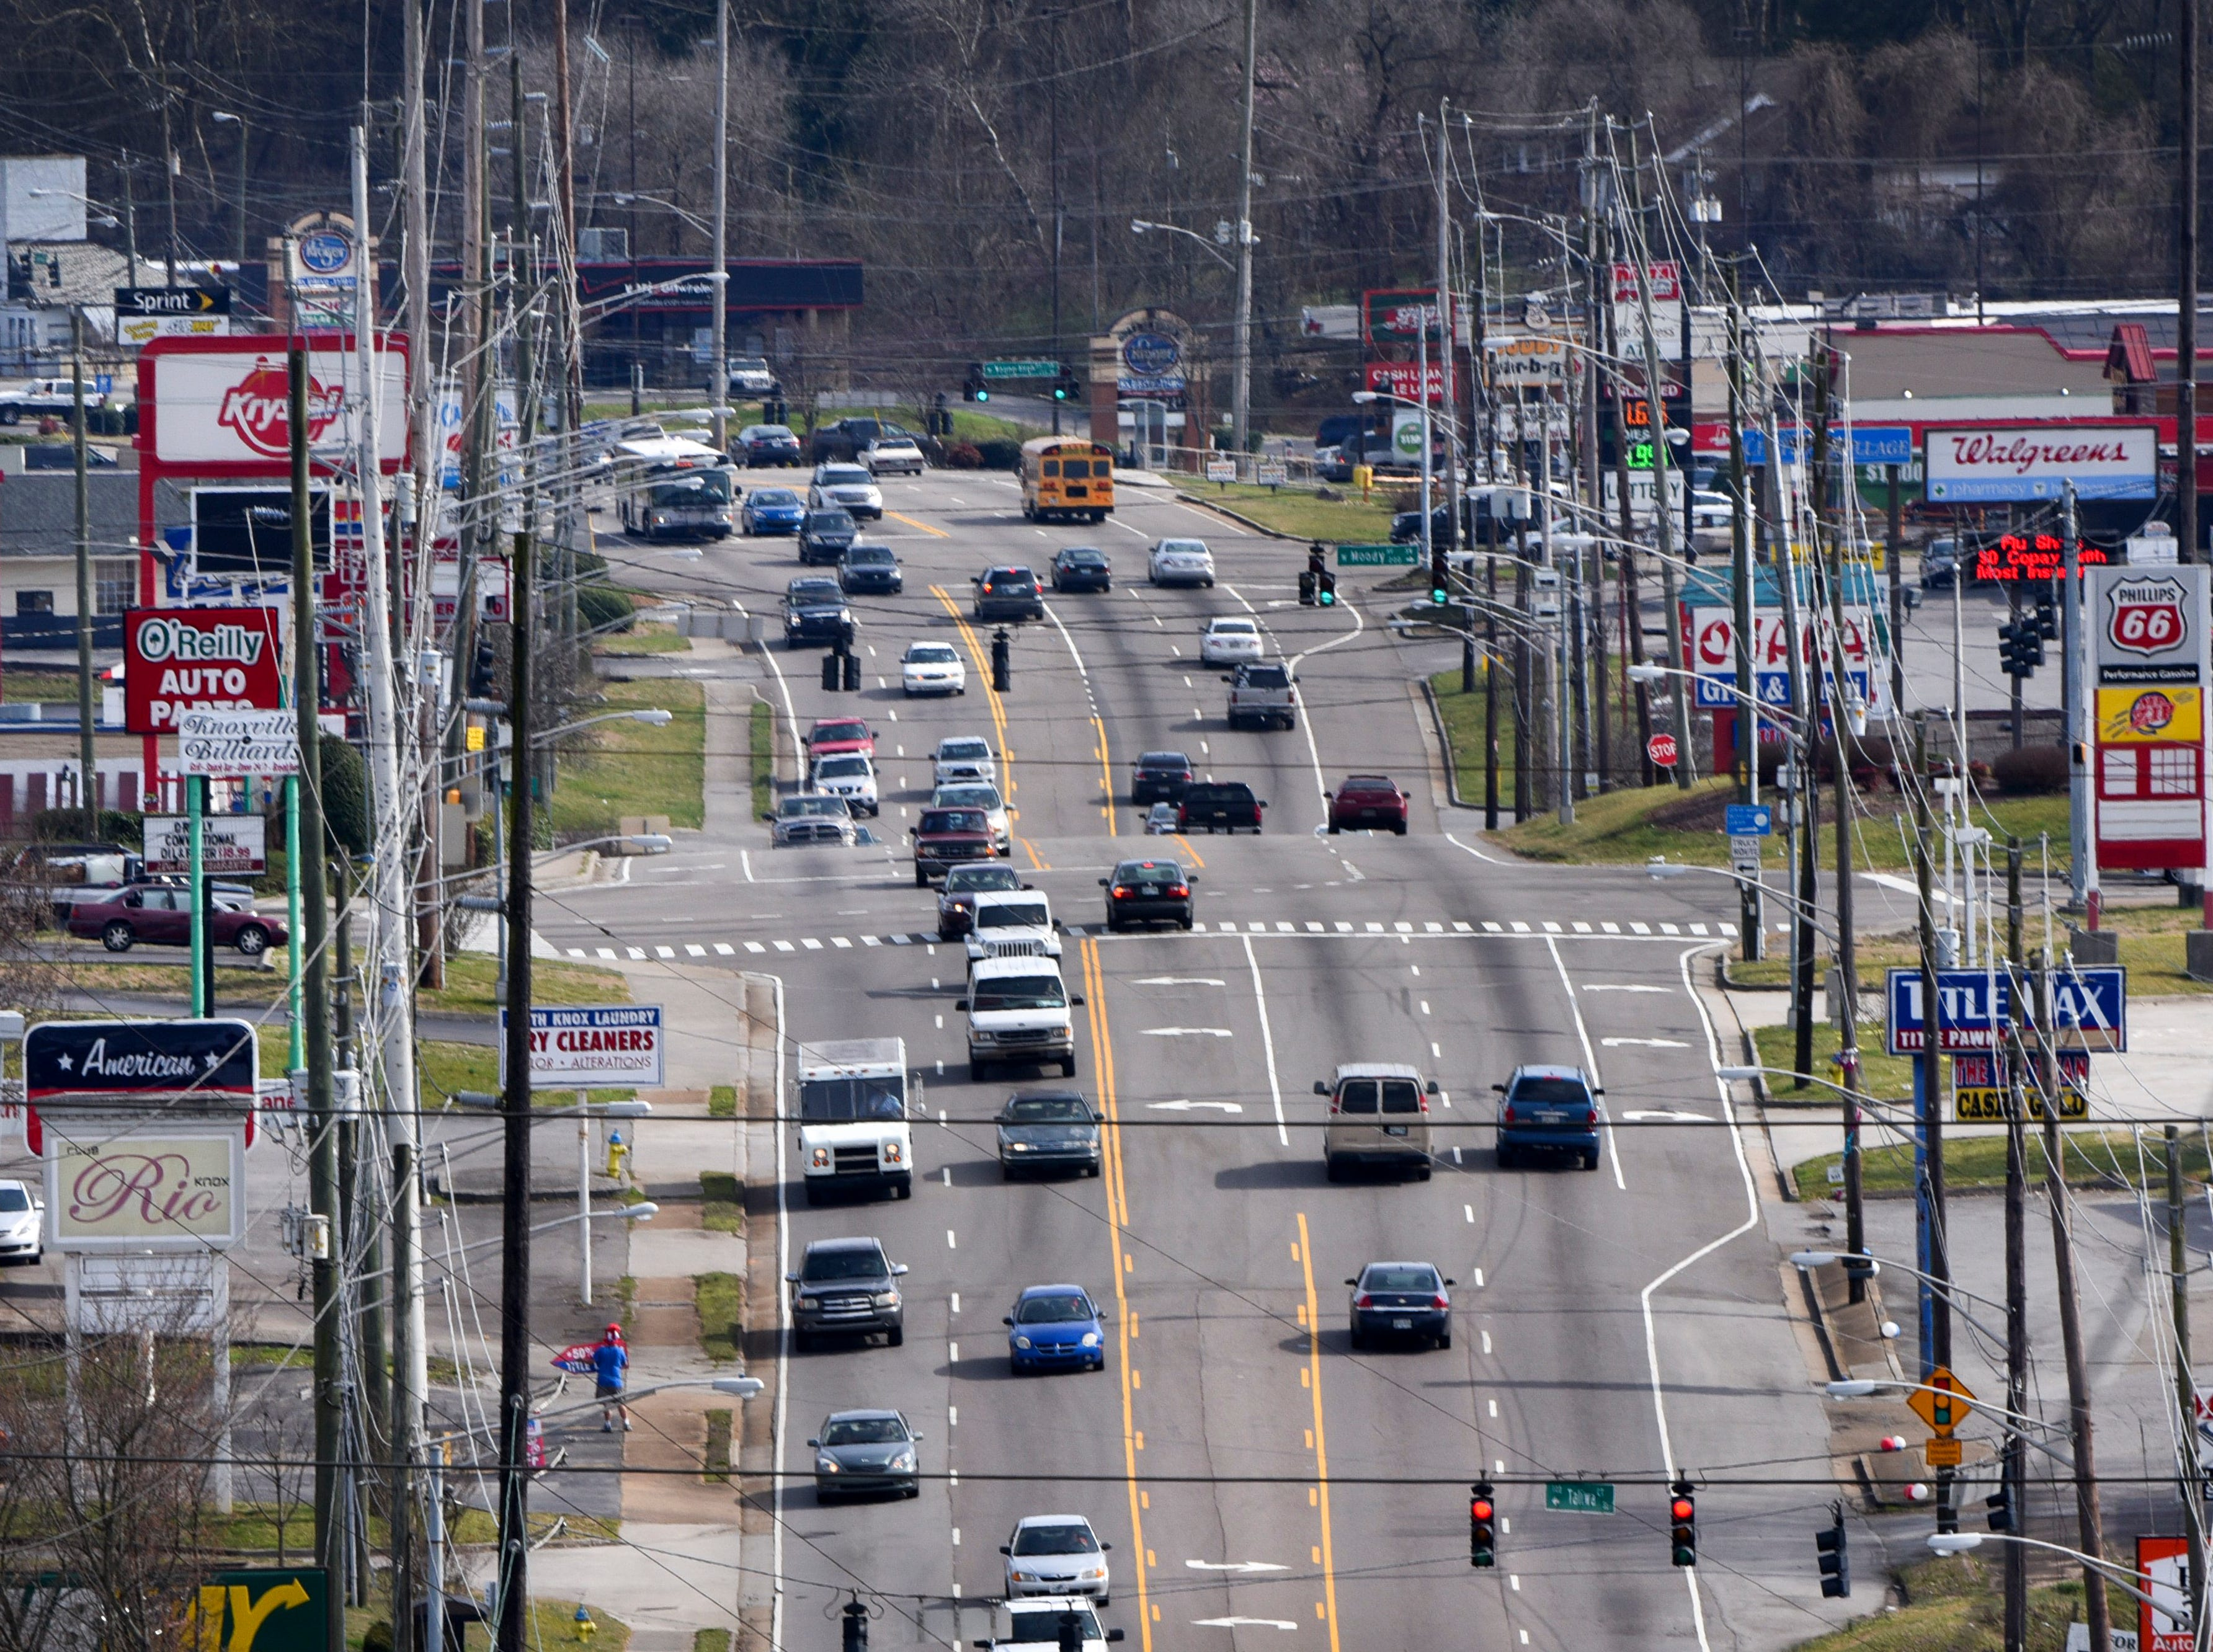 Chapman Highway is pictured looking south at the Moody Avenue intersection Thursday, Mar. 10, 2016. According to State officials without construction of the James White Parkway extension any attempts to address safety and traffic issues on Chapman Highway would be inefficient and too costly.   (MICHAEL PATRICK/NEWS SENTINEL)